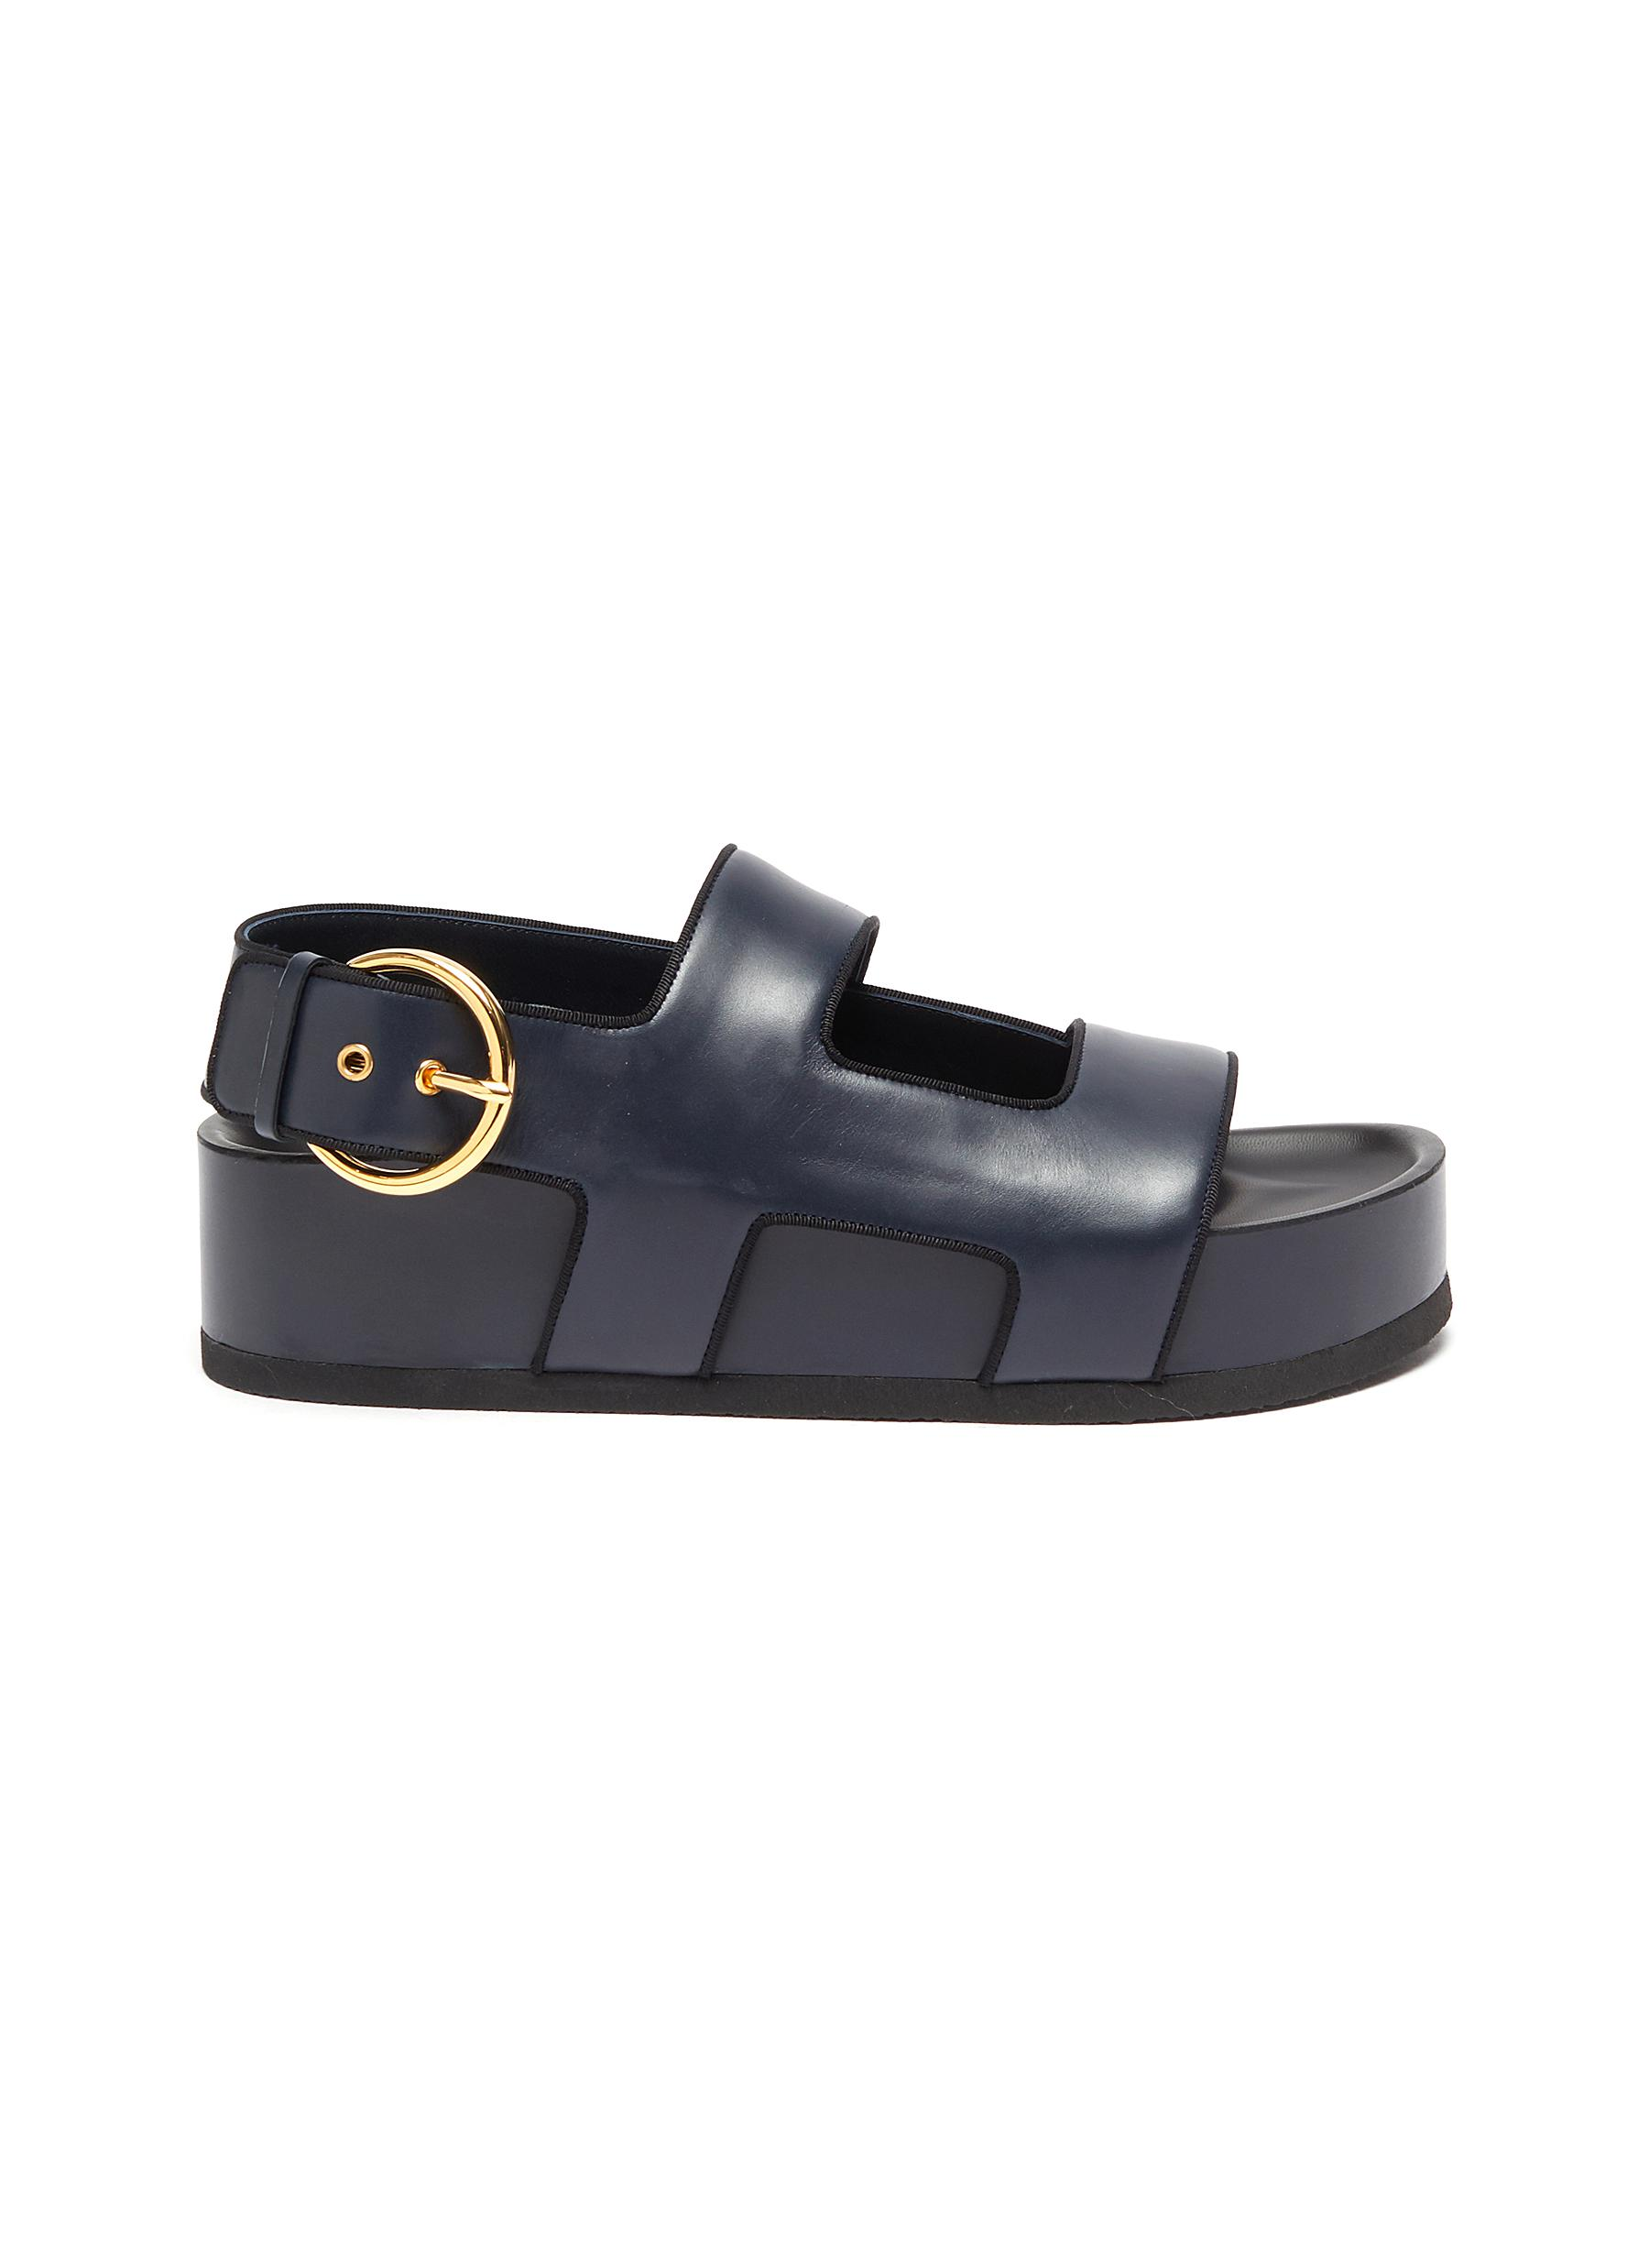 Neous Leathers 'CHER' RING BUCKLE PLATFORM LEATHER SANDALS